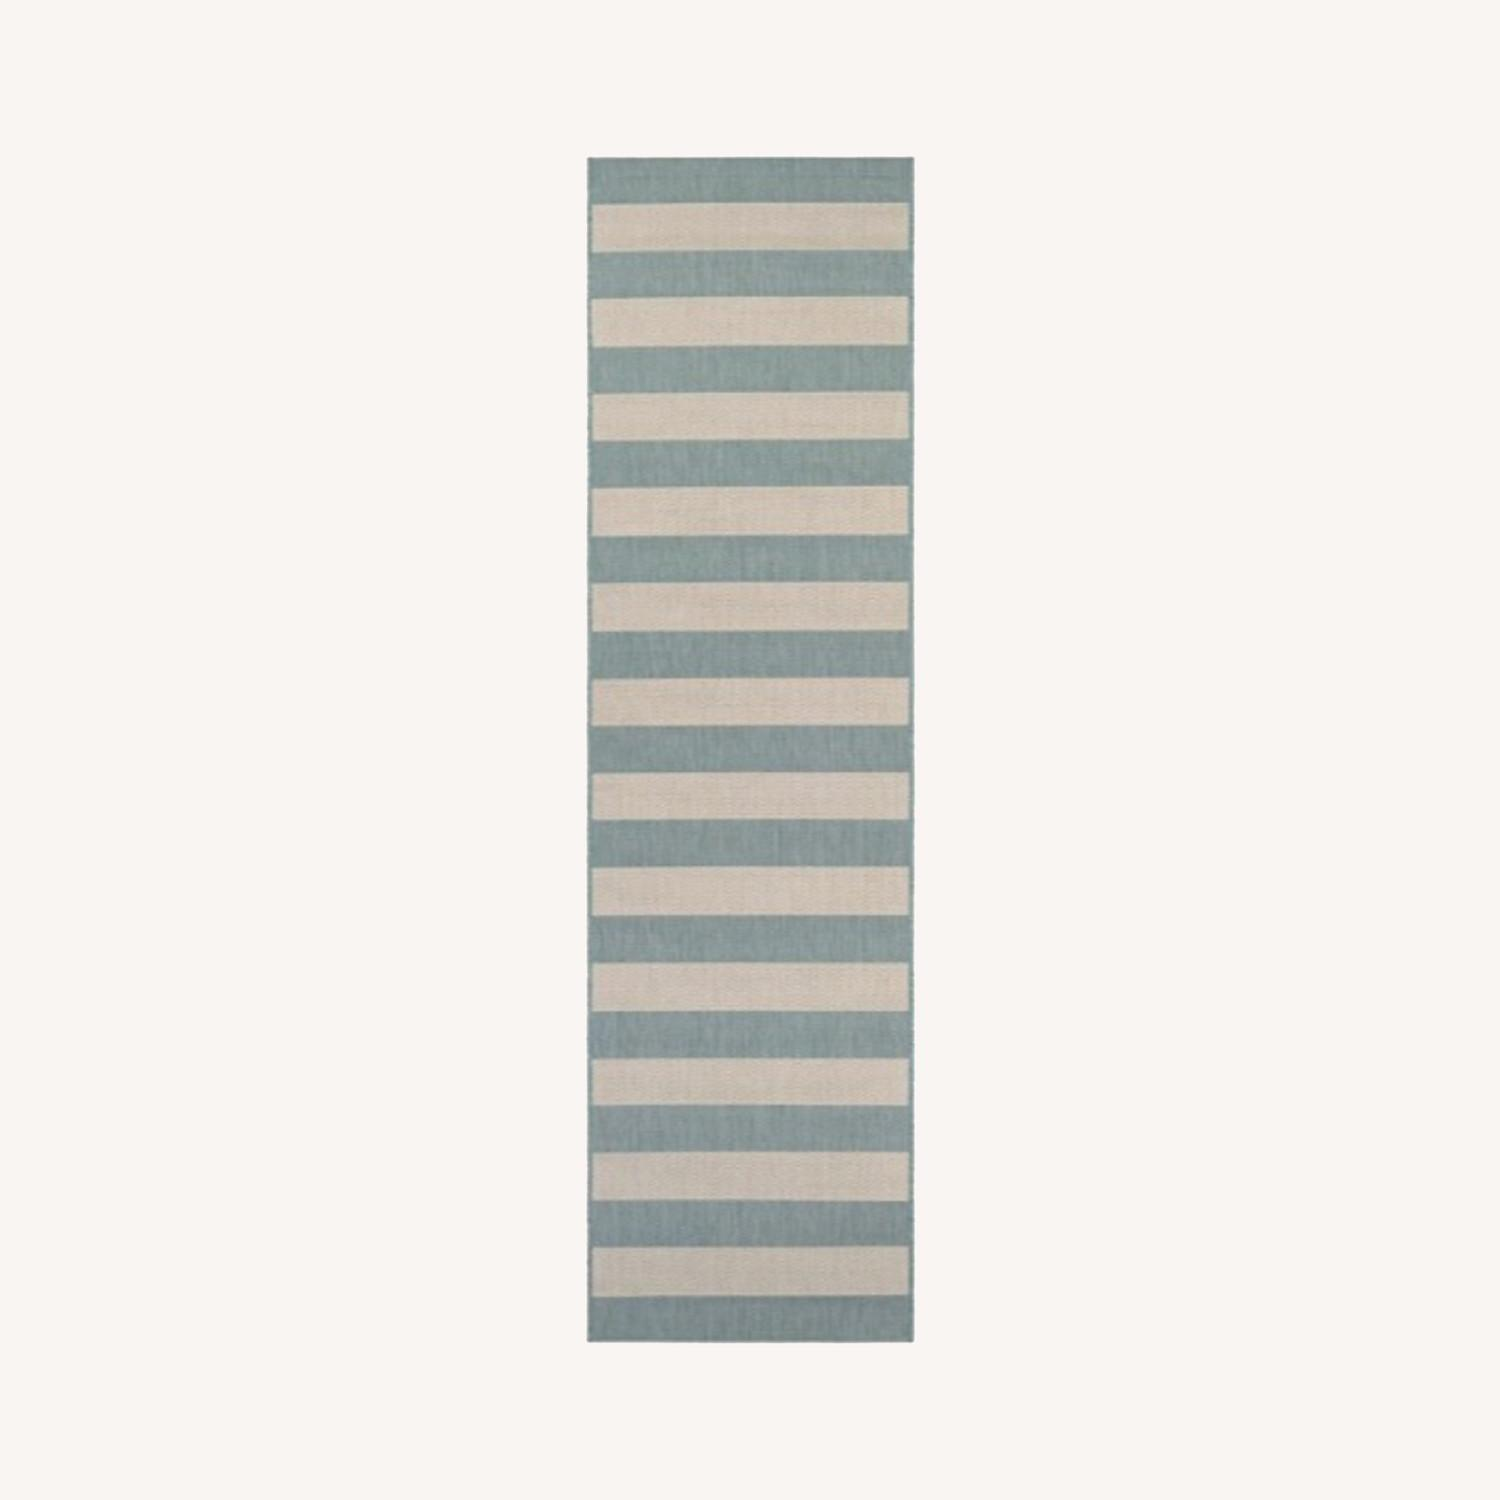 Blue and White Striped 7-Foot Runner Rug - image-0